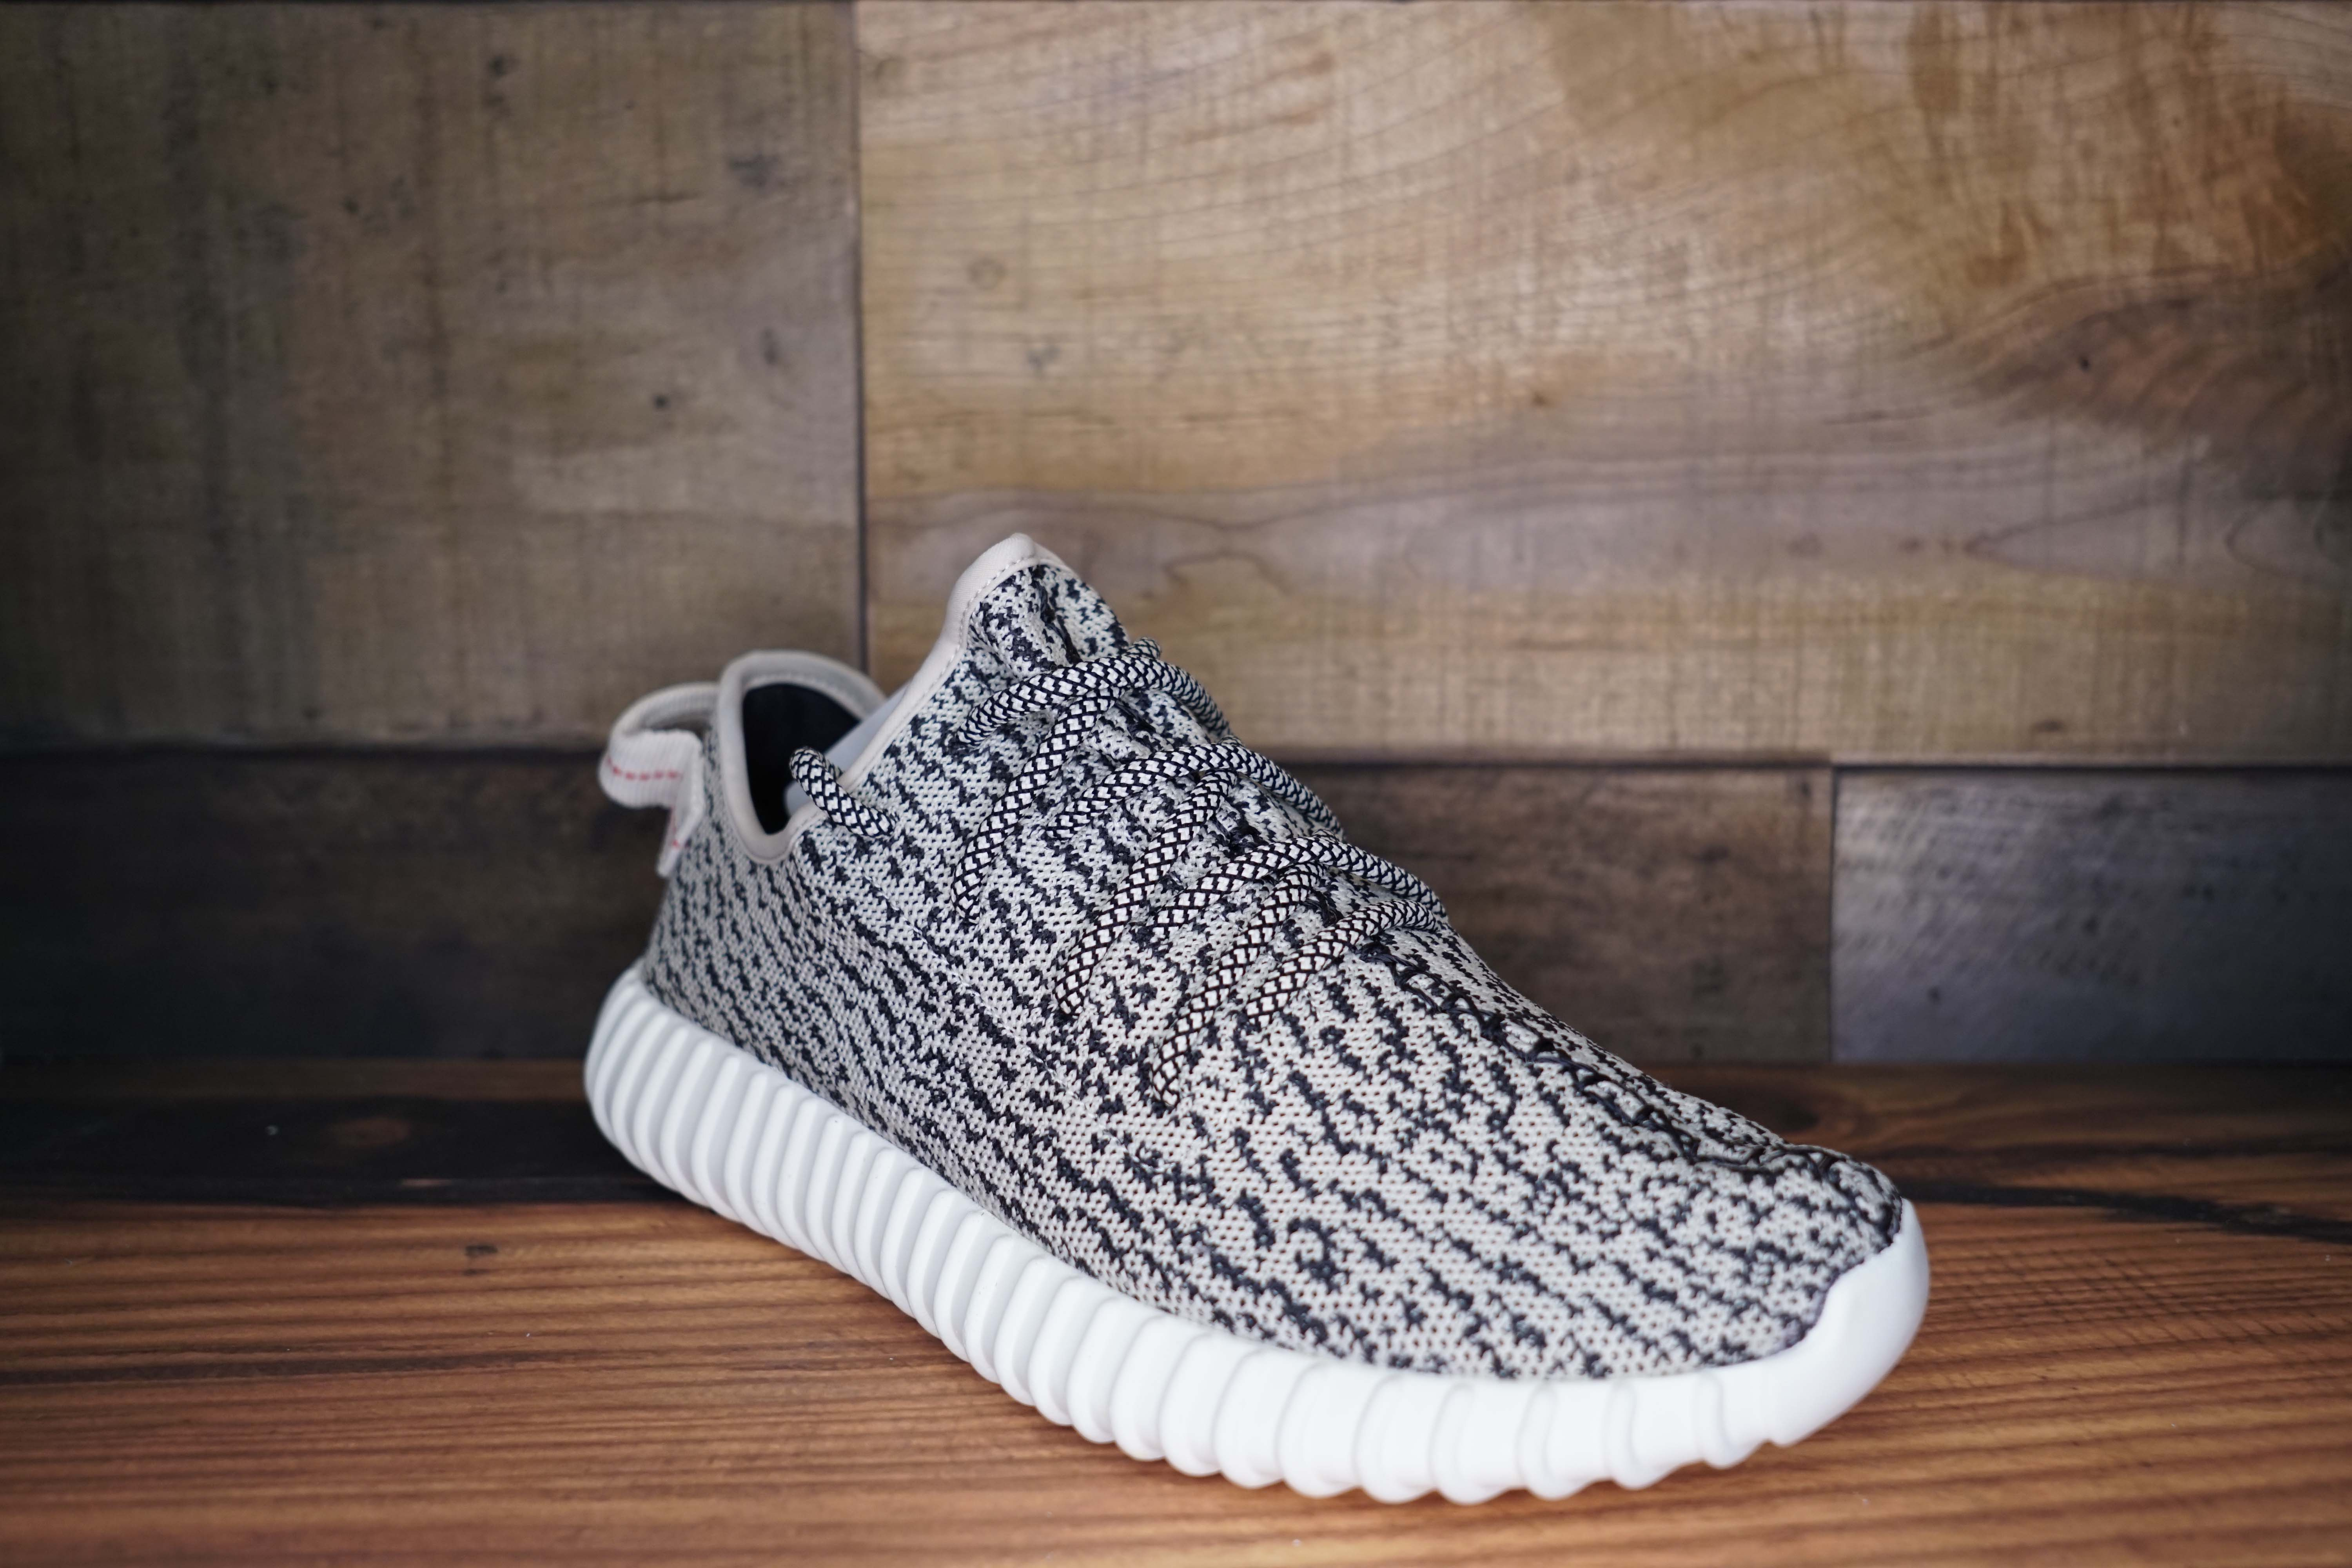 How to Tell If Your Yeezy Boost 350 Moonrock Logtenberg Service